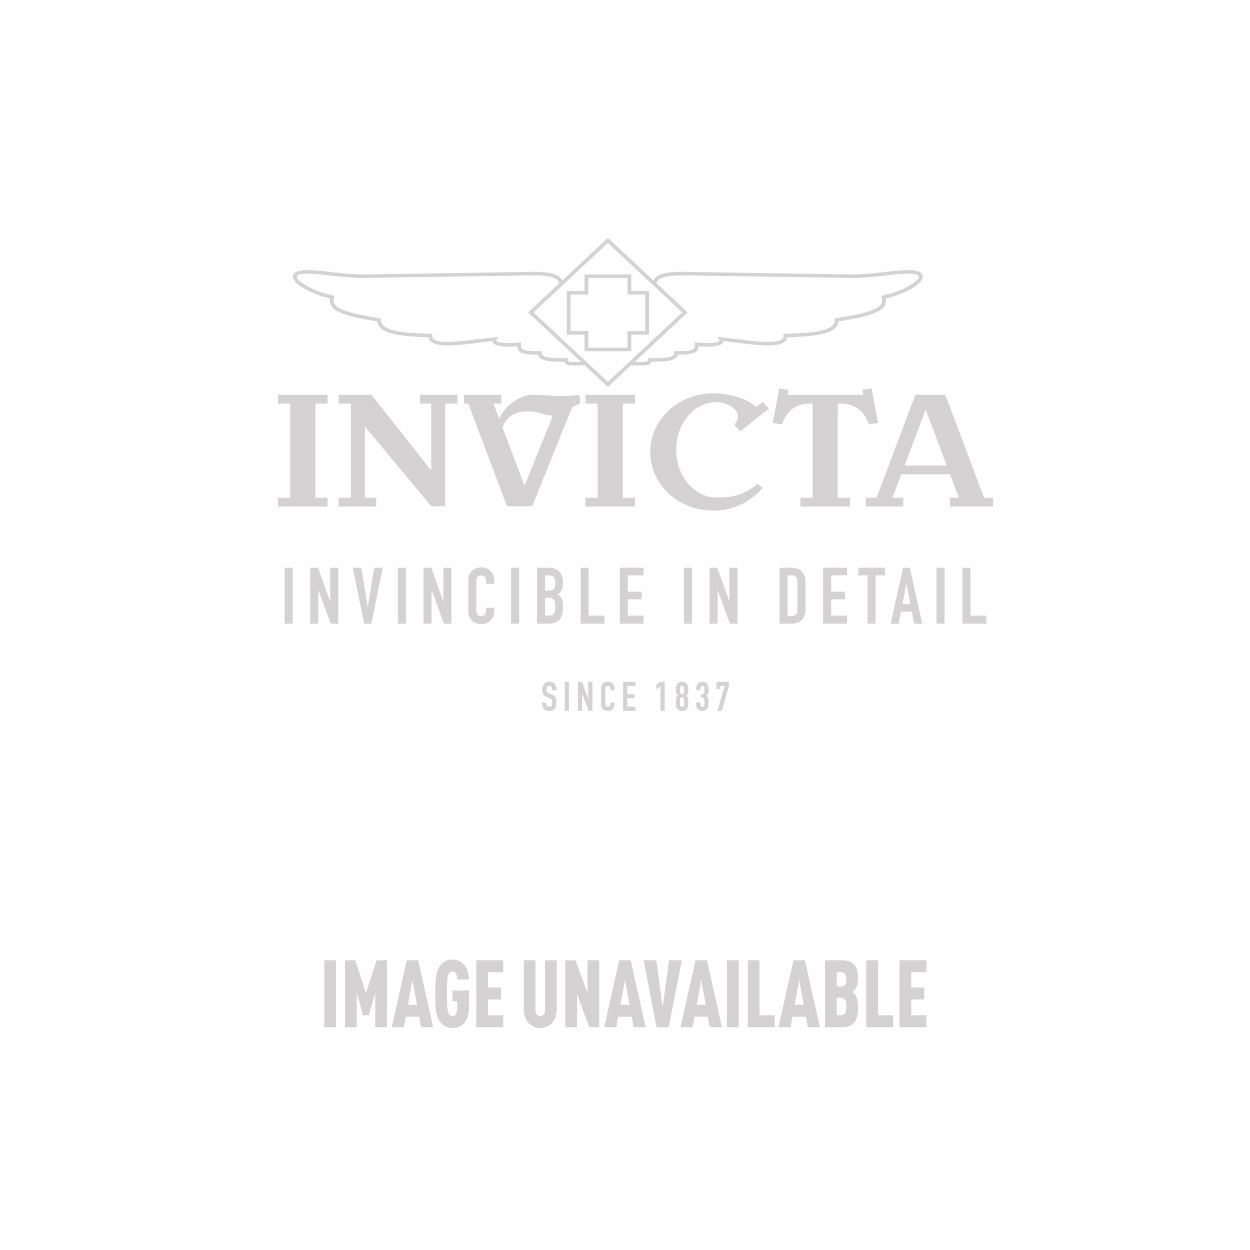 Invicta S. Coifman Swiss Movement Quartz Watch - Stainless Steel case Stainless Steel band - Model SC0348